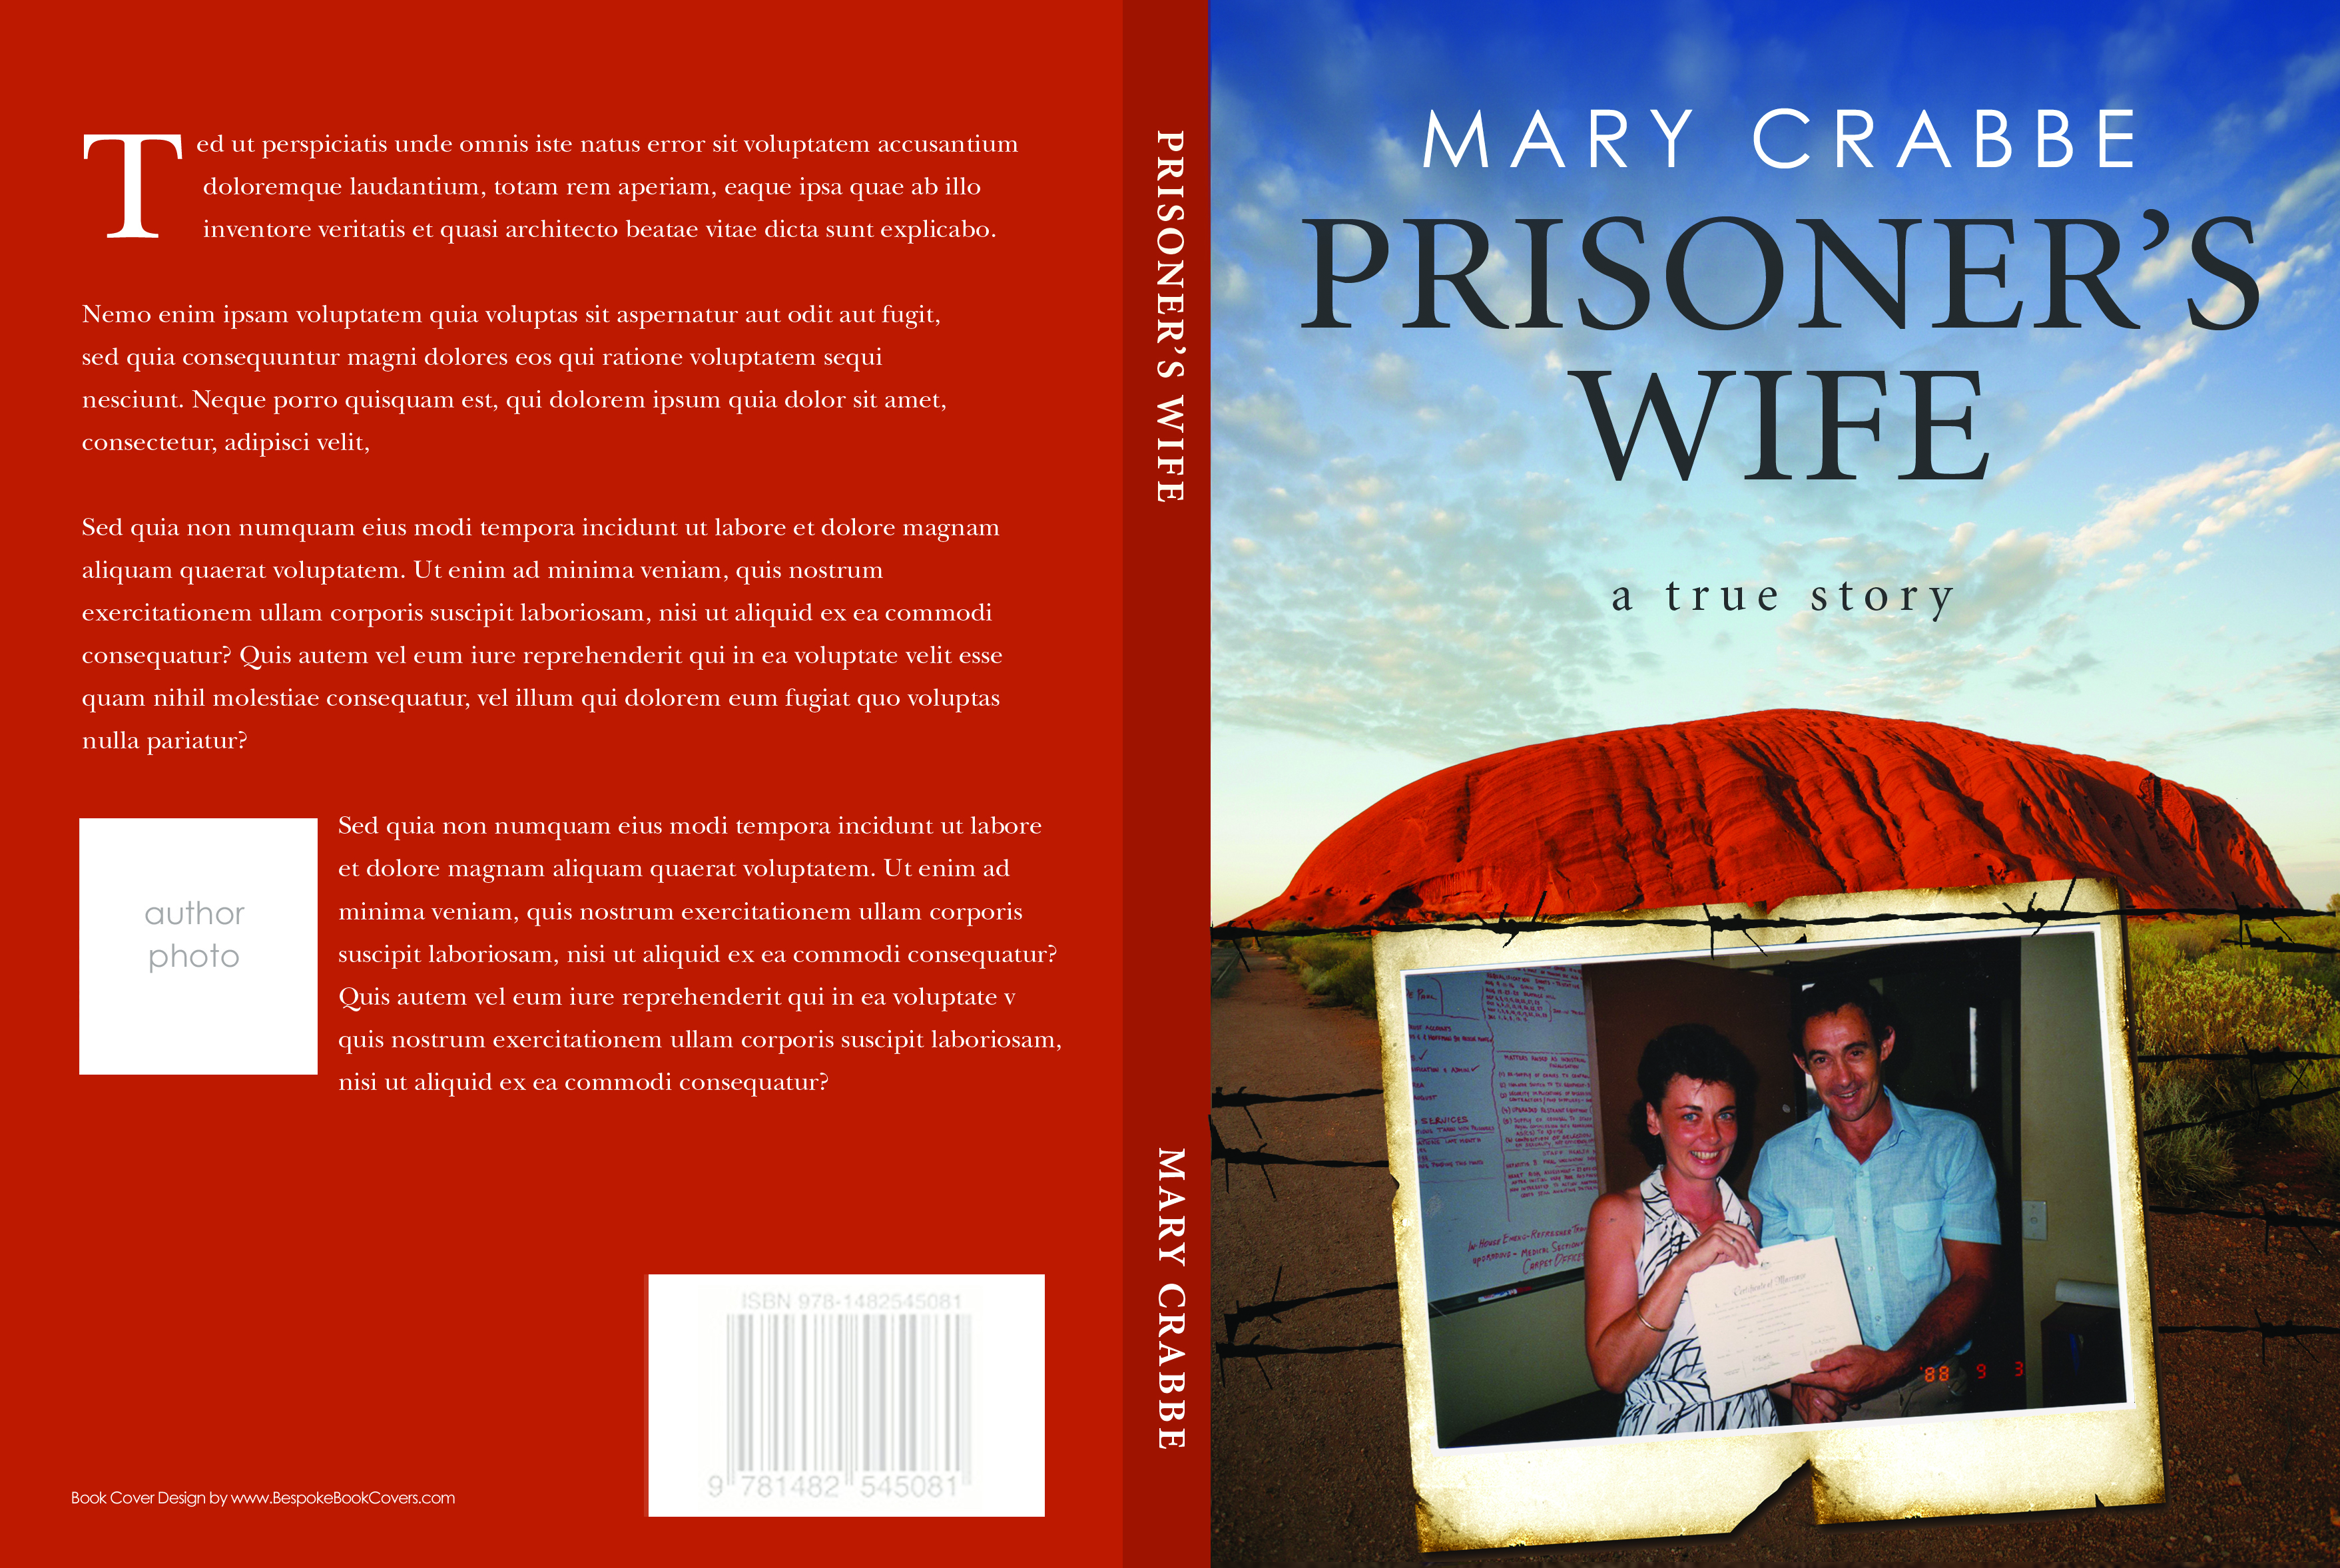 Prisoners wife book cover